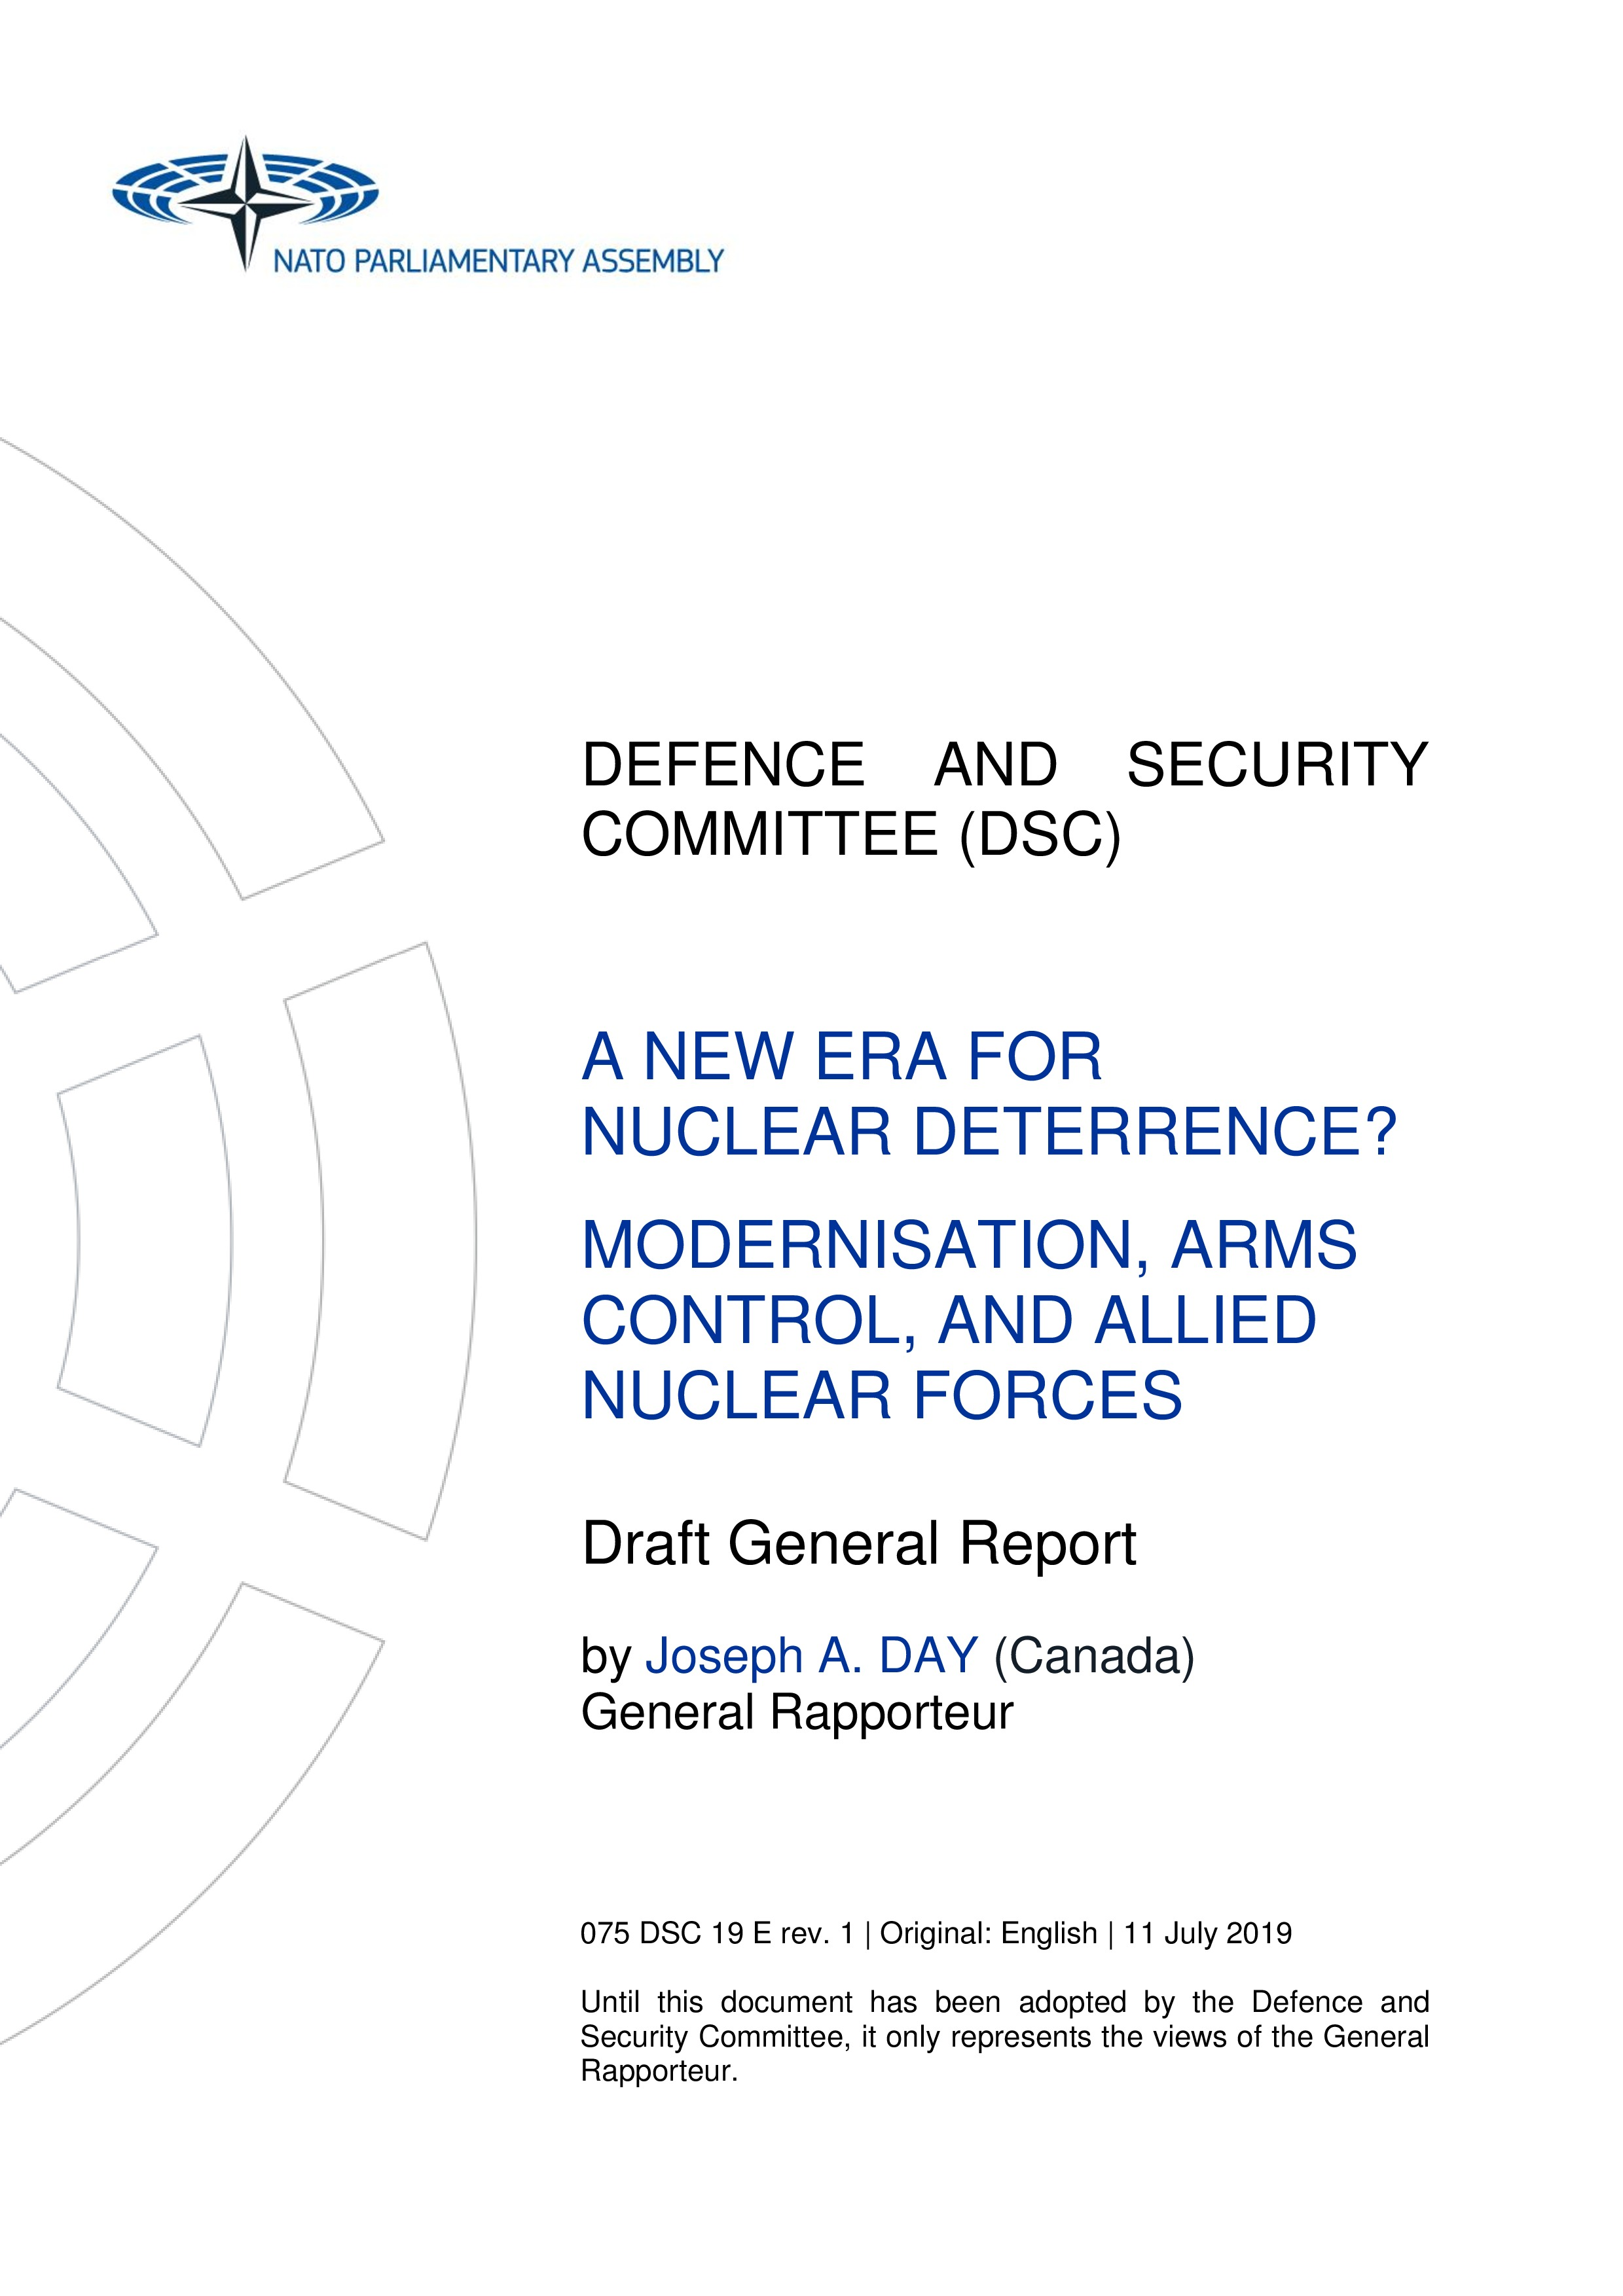 2019 - A NEW ERA FOR NUCLEAR DETERRENCE? MODERNISATION, ARMS